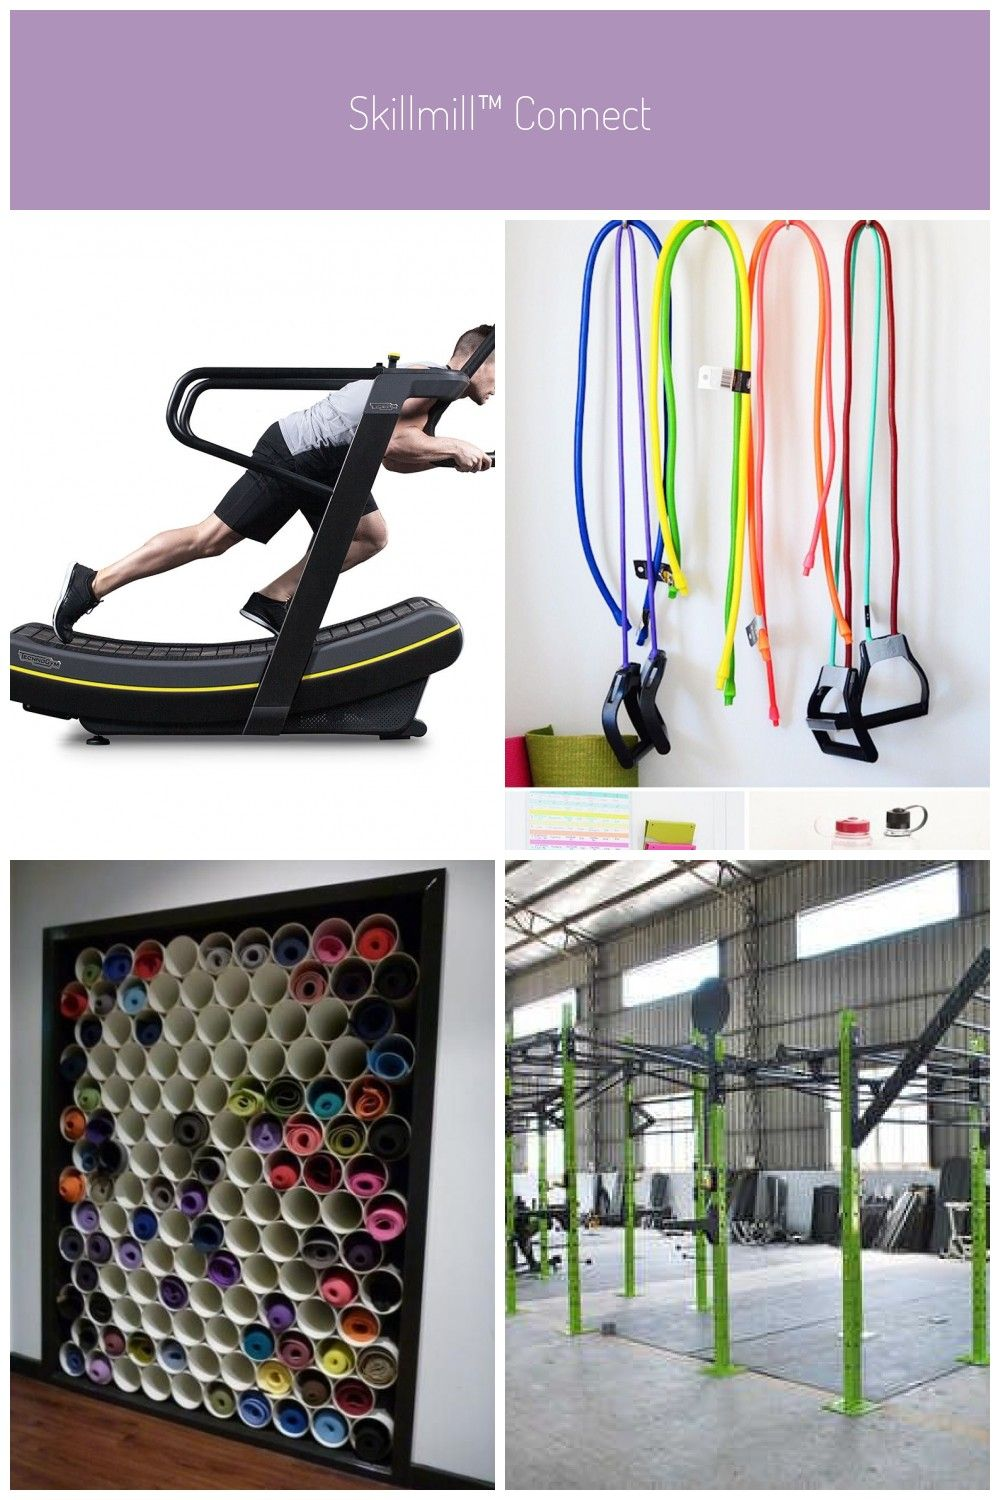 SKILLMILL™ CONNECT - DJK04DT - Business Use #fitness equipment Skillmill™ connect